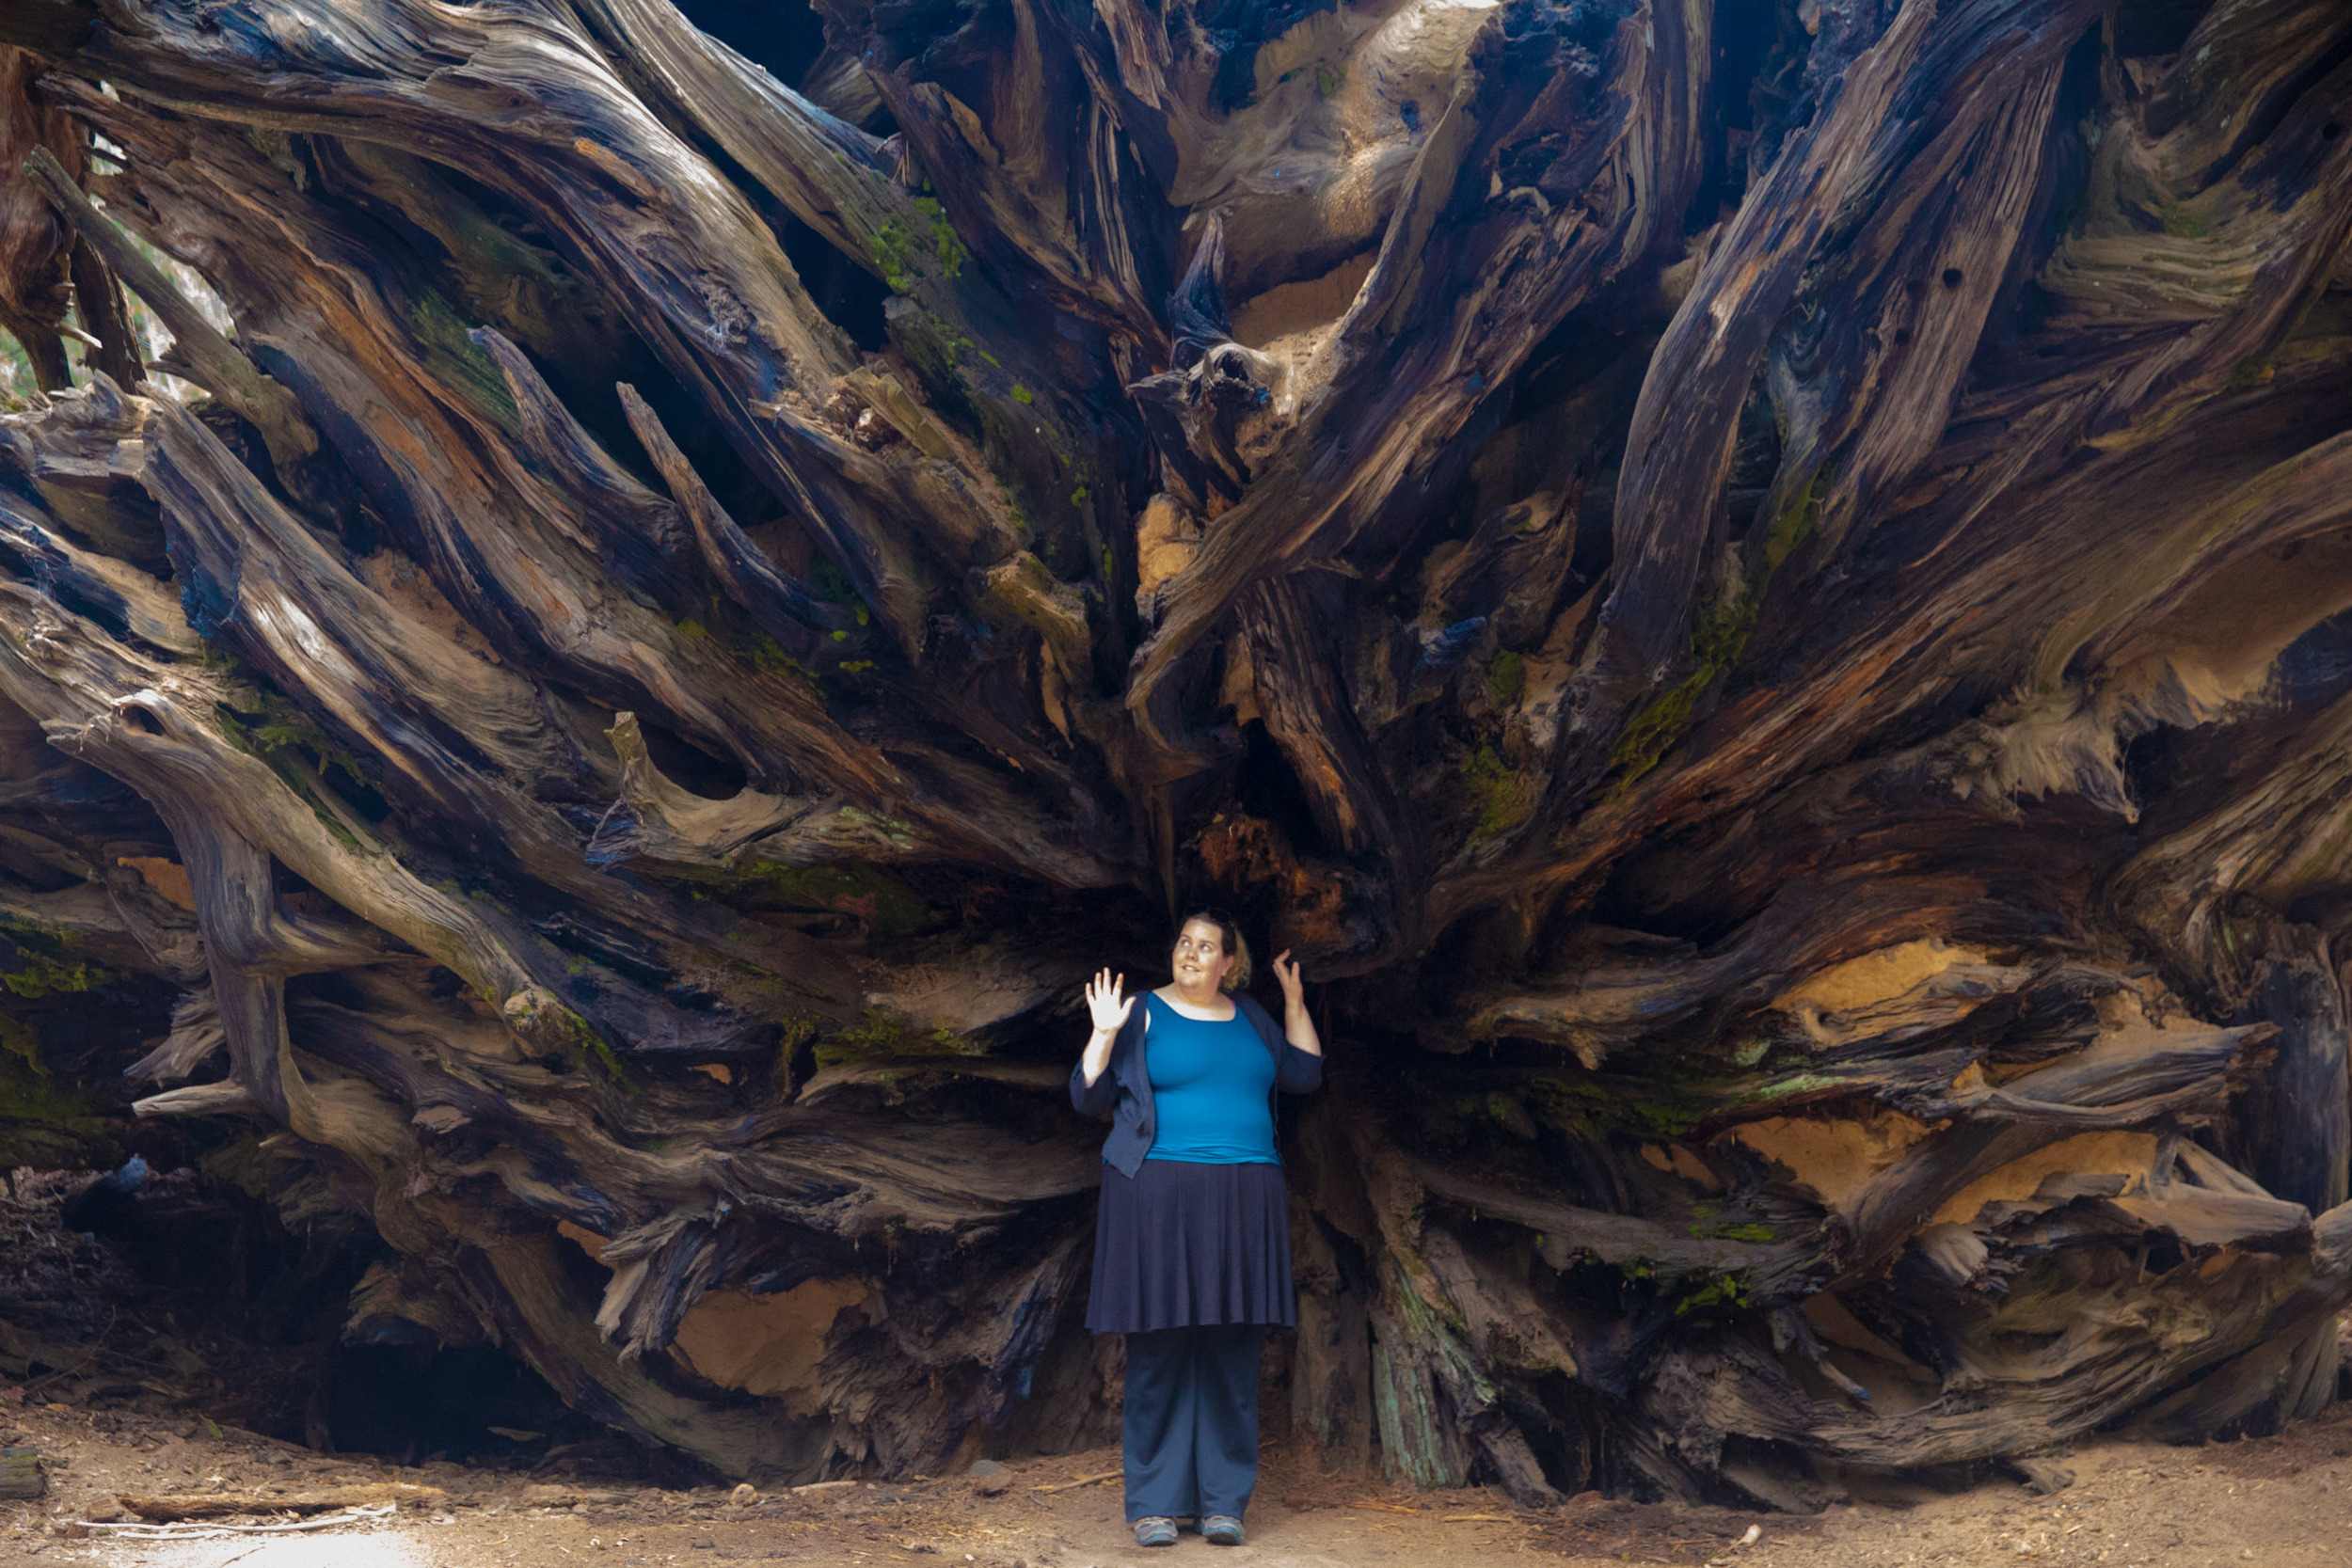 Shannan stands inside the root system of a fallen sequoia tree. The root system is very shallow compared to their size and Sequoias are known to have fallen oven in a gentle breeze. This particular tree fell in the 1950's and doesn't show much inclination to decompose anytime soon.